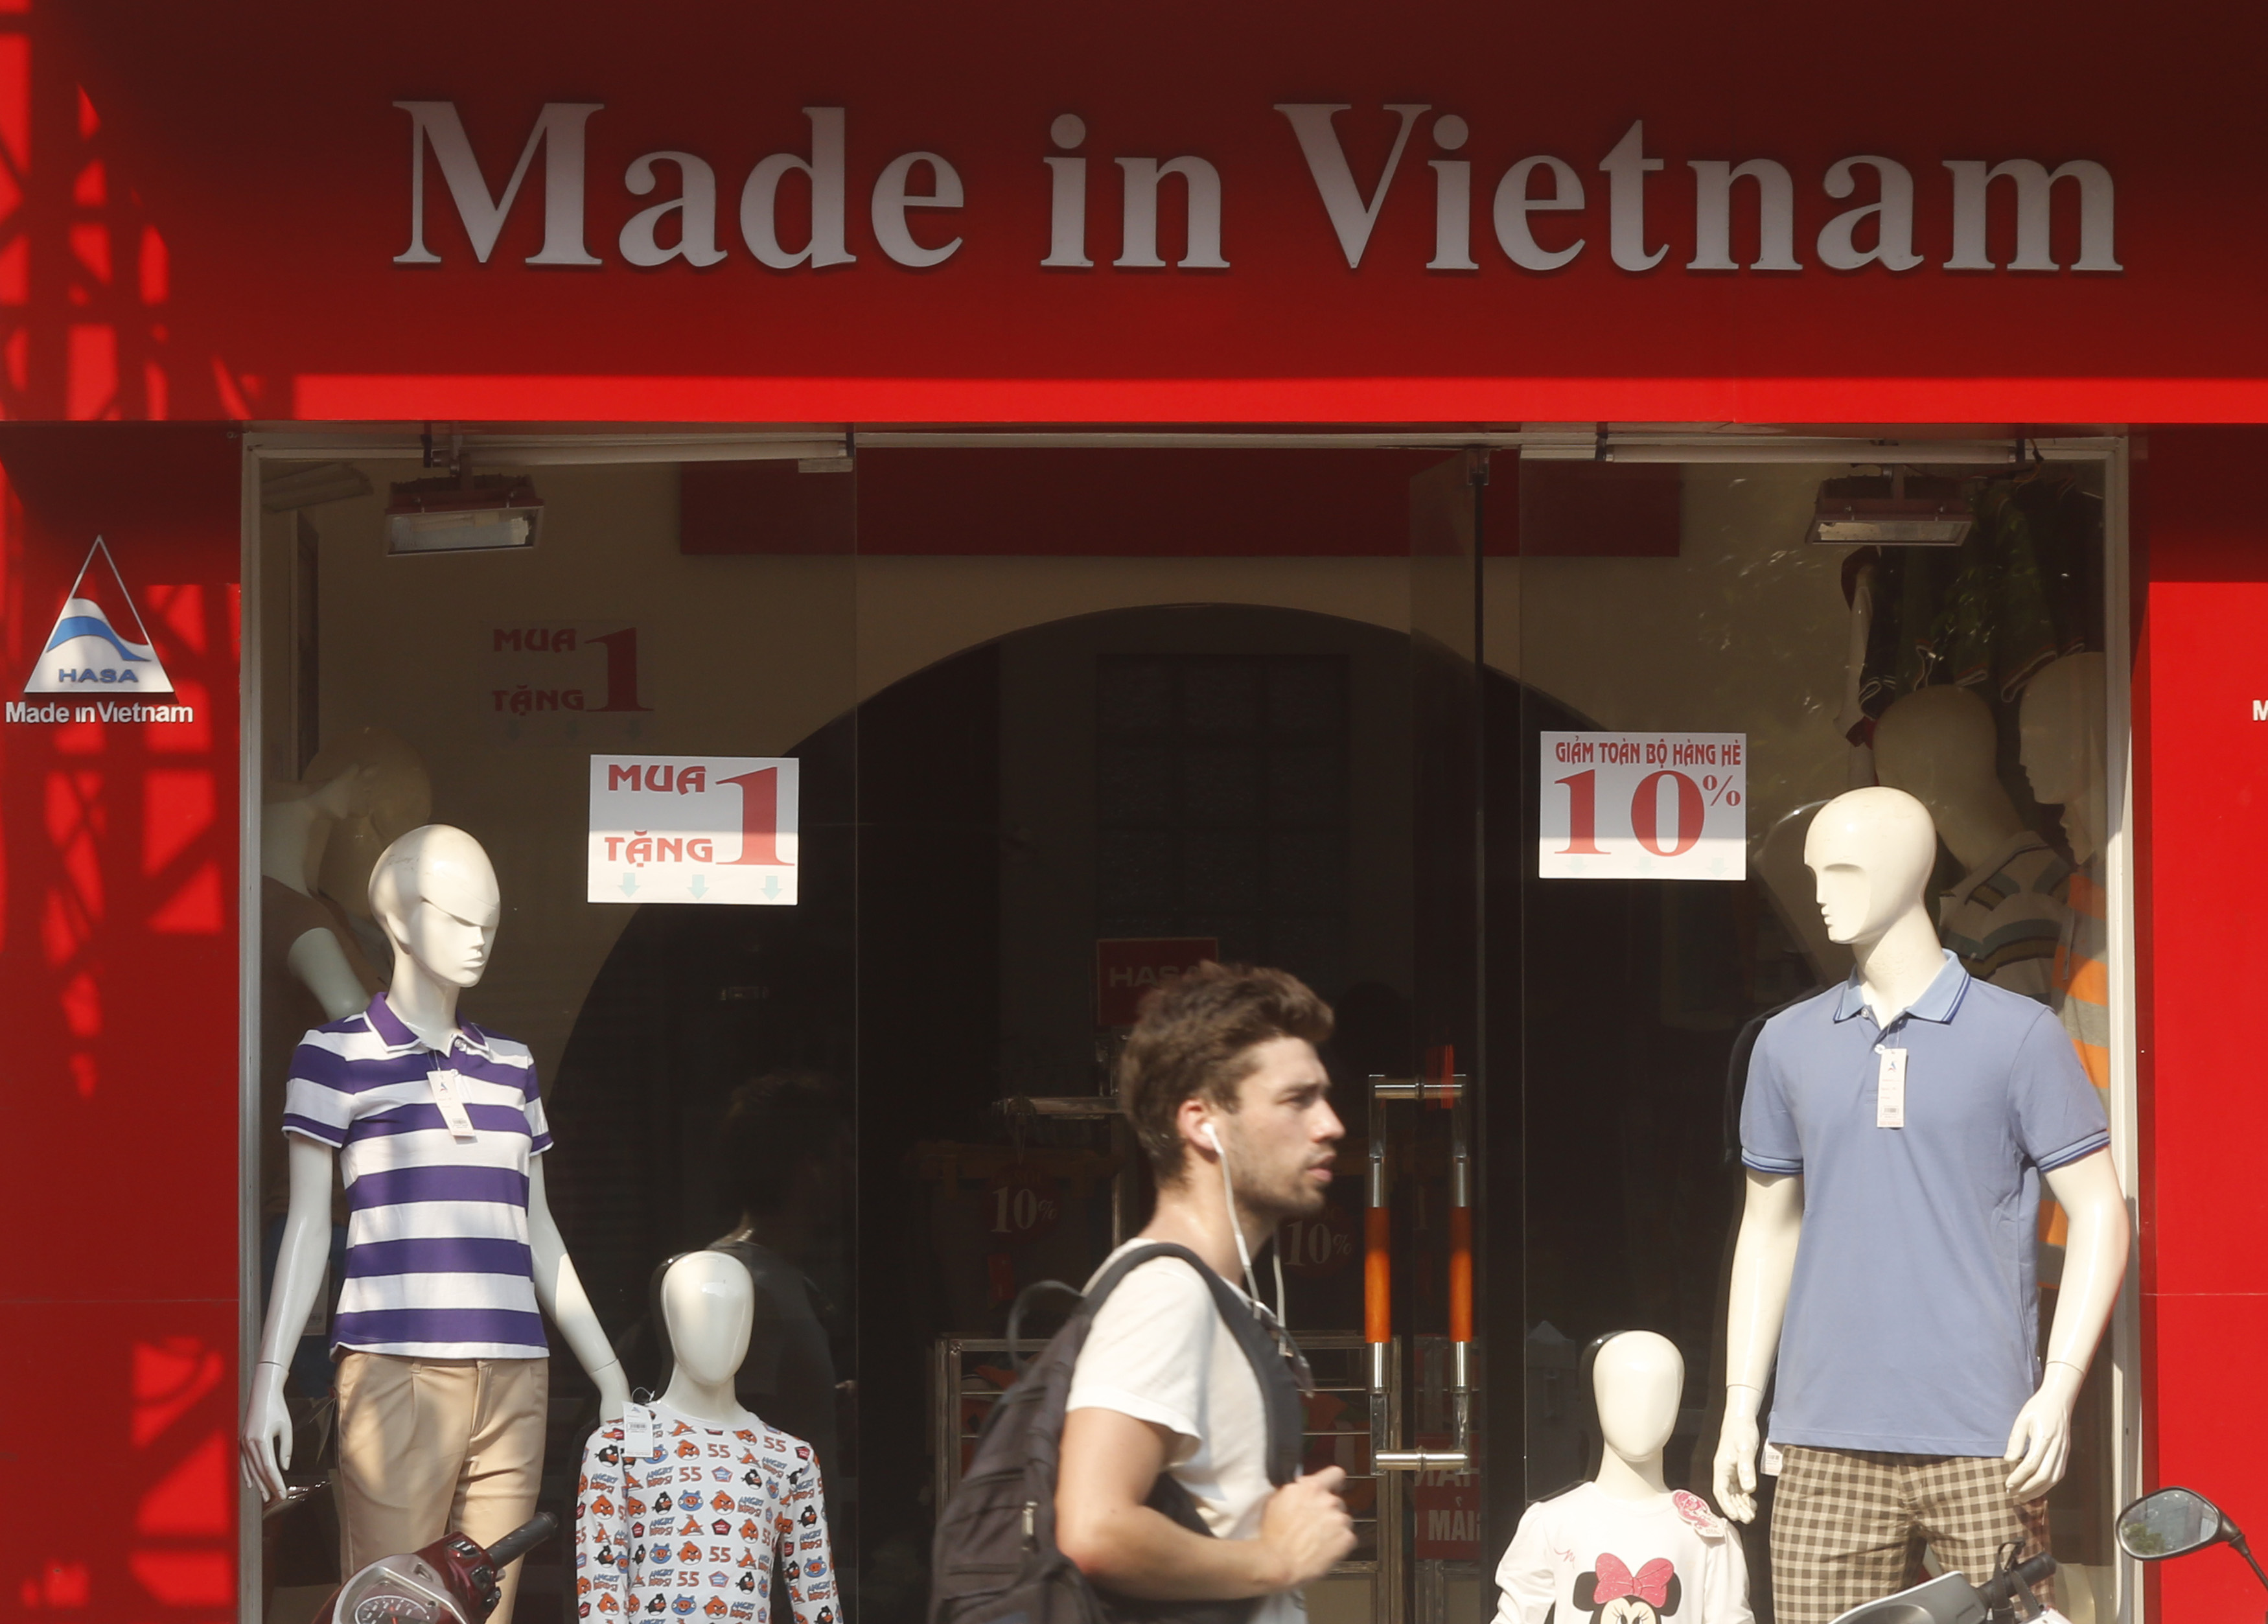 A tourist walks past a clothes shop in Hanoi October 3, 2014. Growth in exports driven by manufacturing could give Vietnam a trade surplus of $1.5 billion this year, far surpassing its forecast of $500 million in July, according to the country's trad...